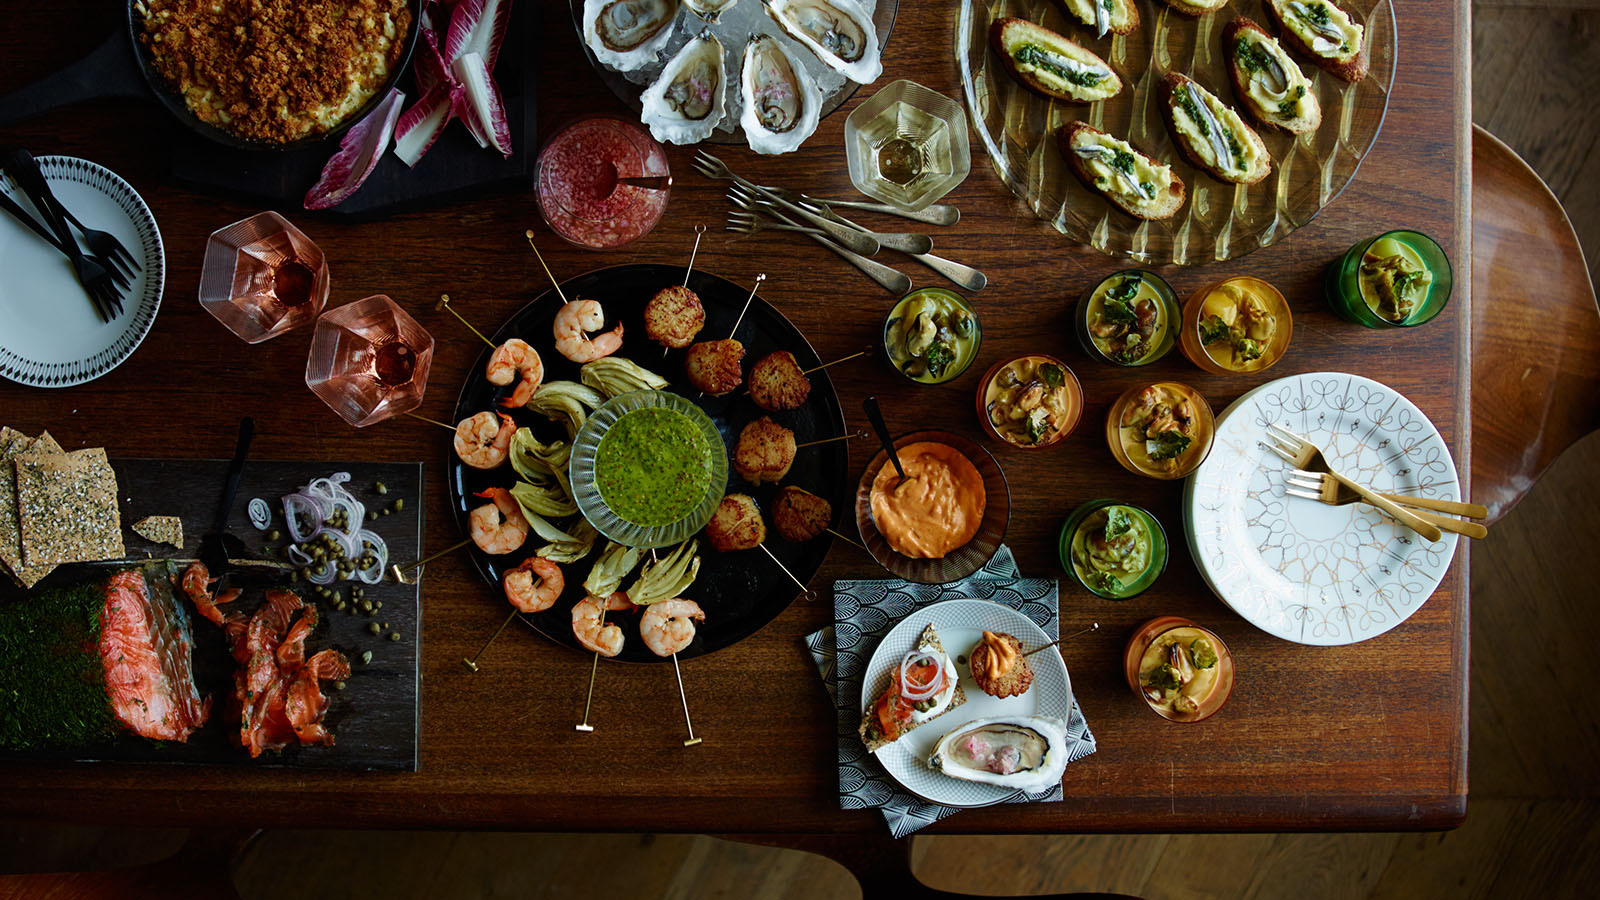 8 Questions for a Party Planner